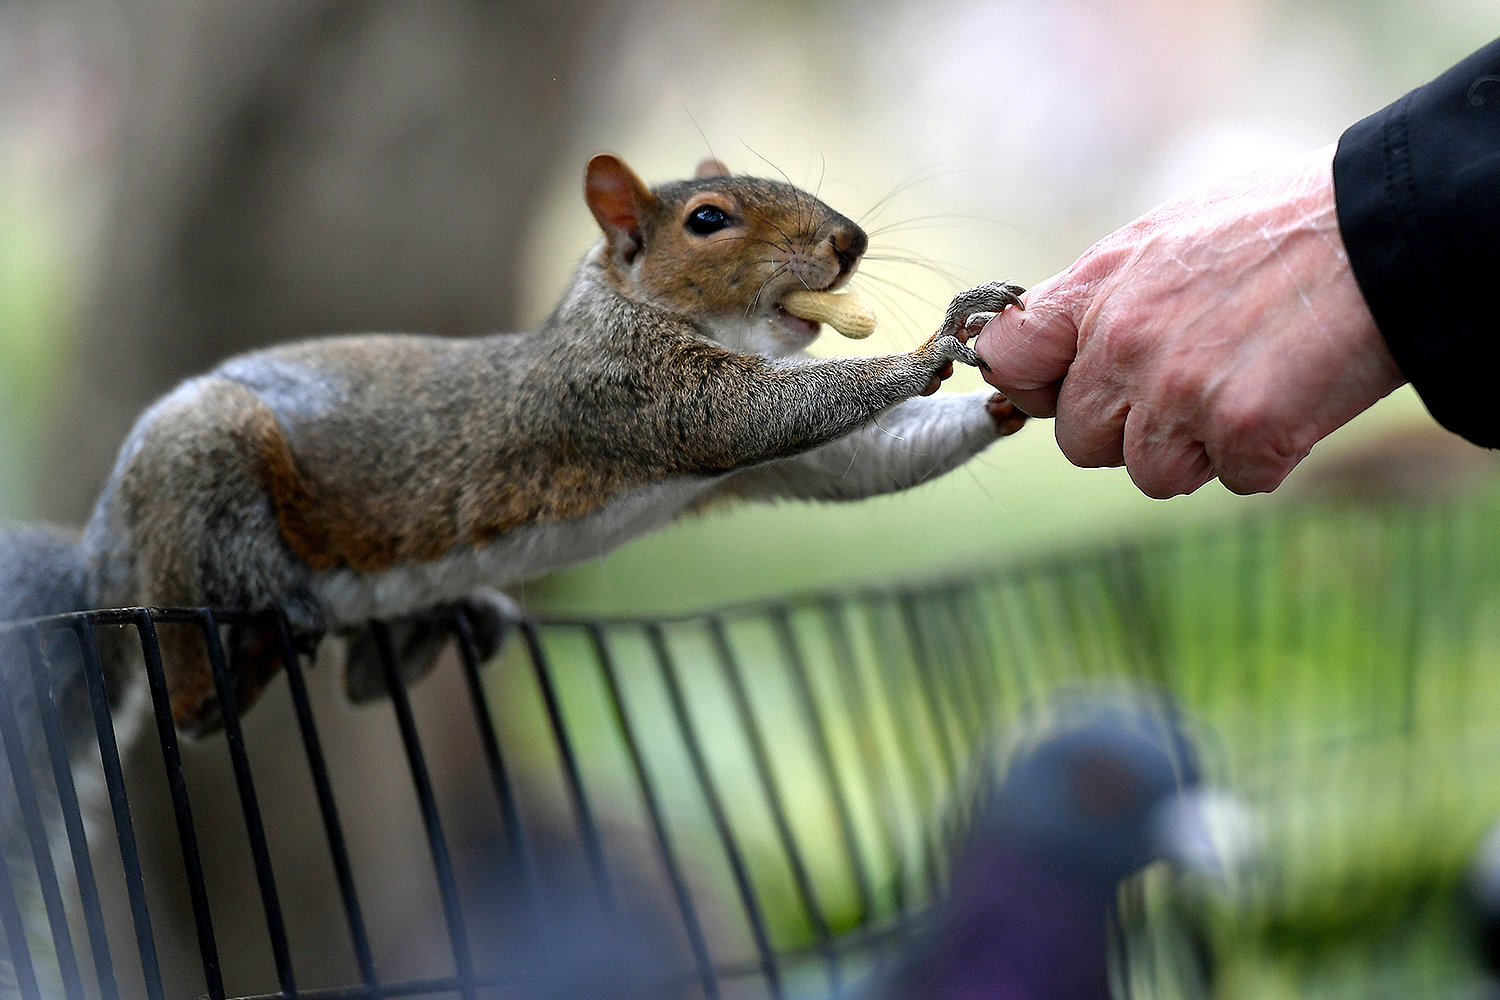 A person feeds peanuts to a gray squirrel in New York City's Washington Square Park on Oct. 7. ANGELA WEISS/AFP via Getty Images